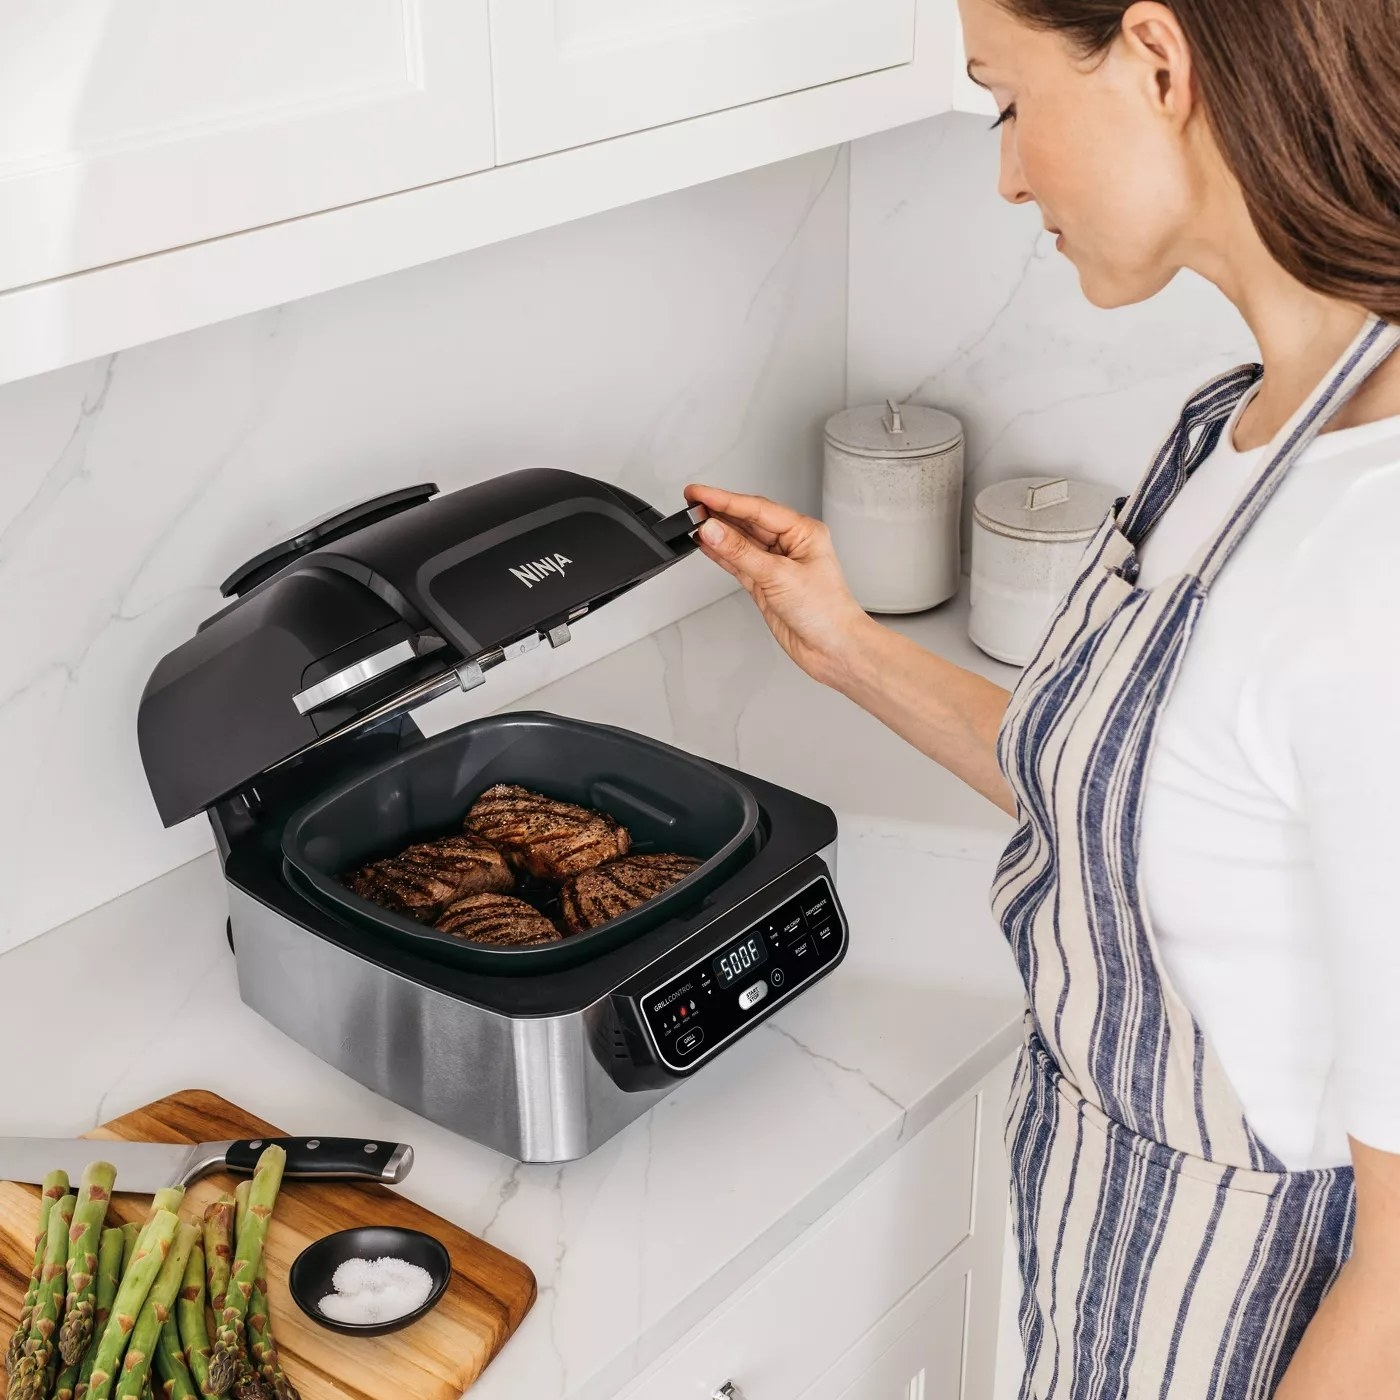 A model using the grill to make steak in a kitchen